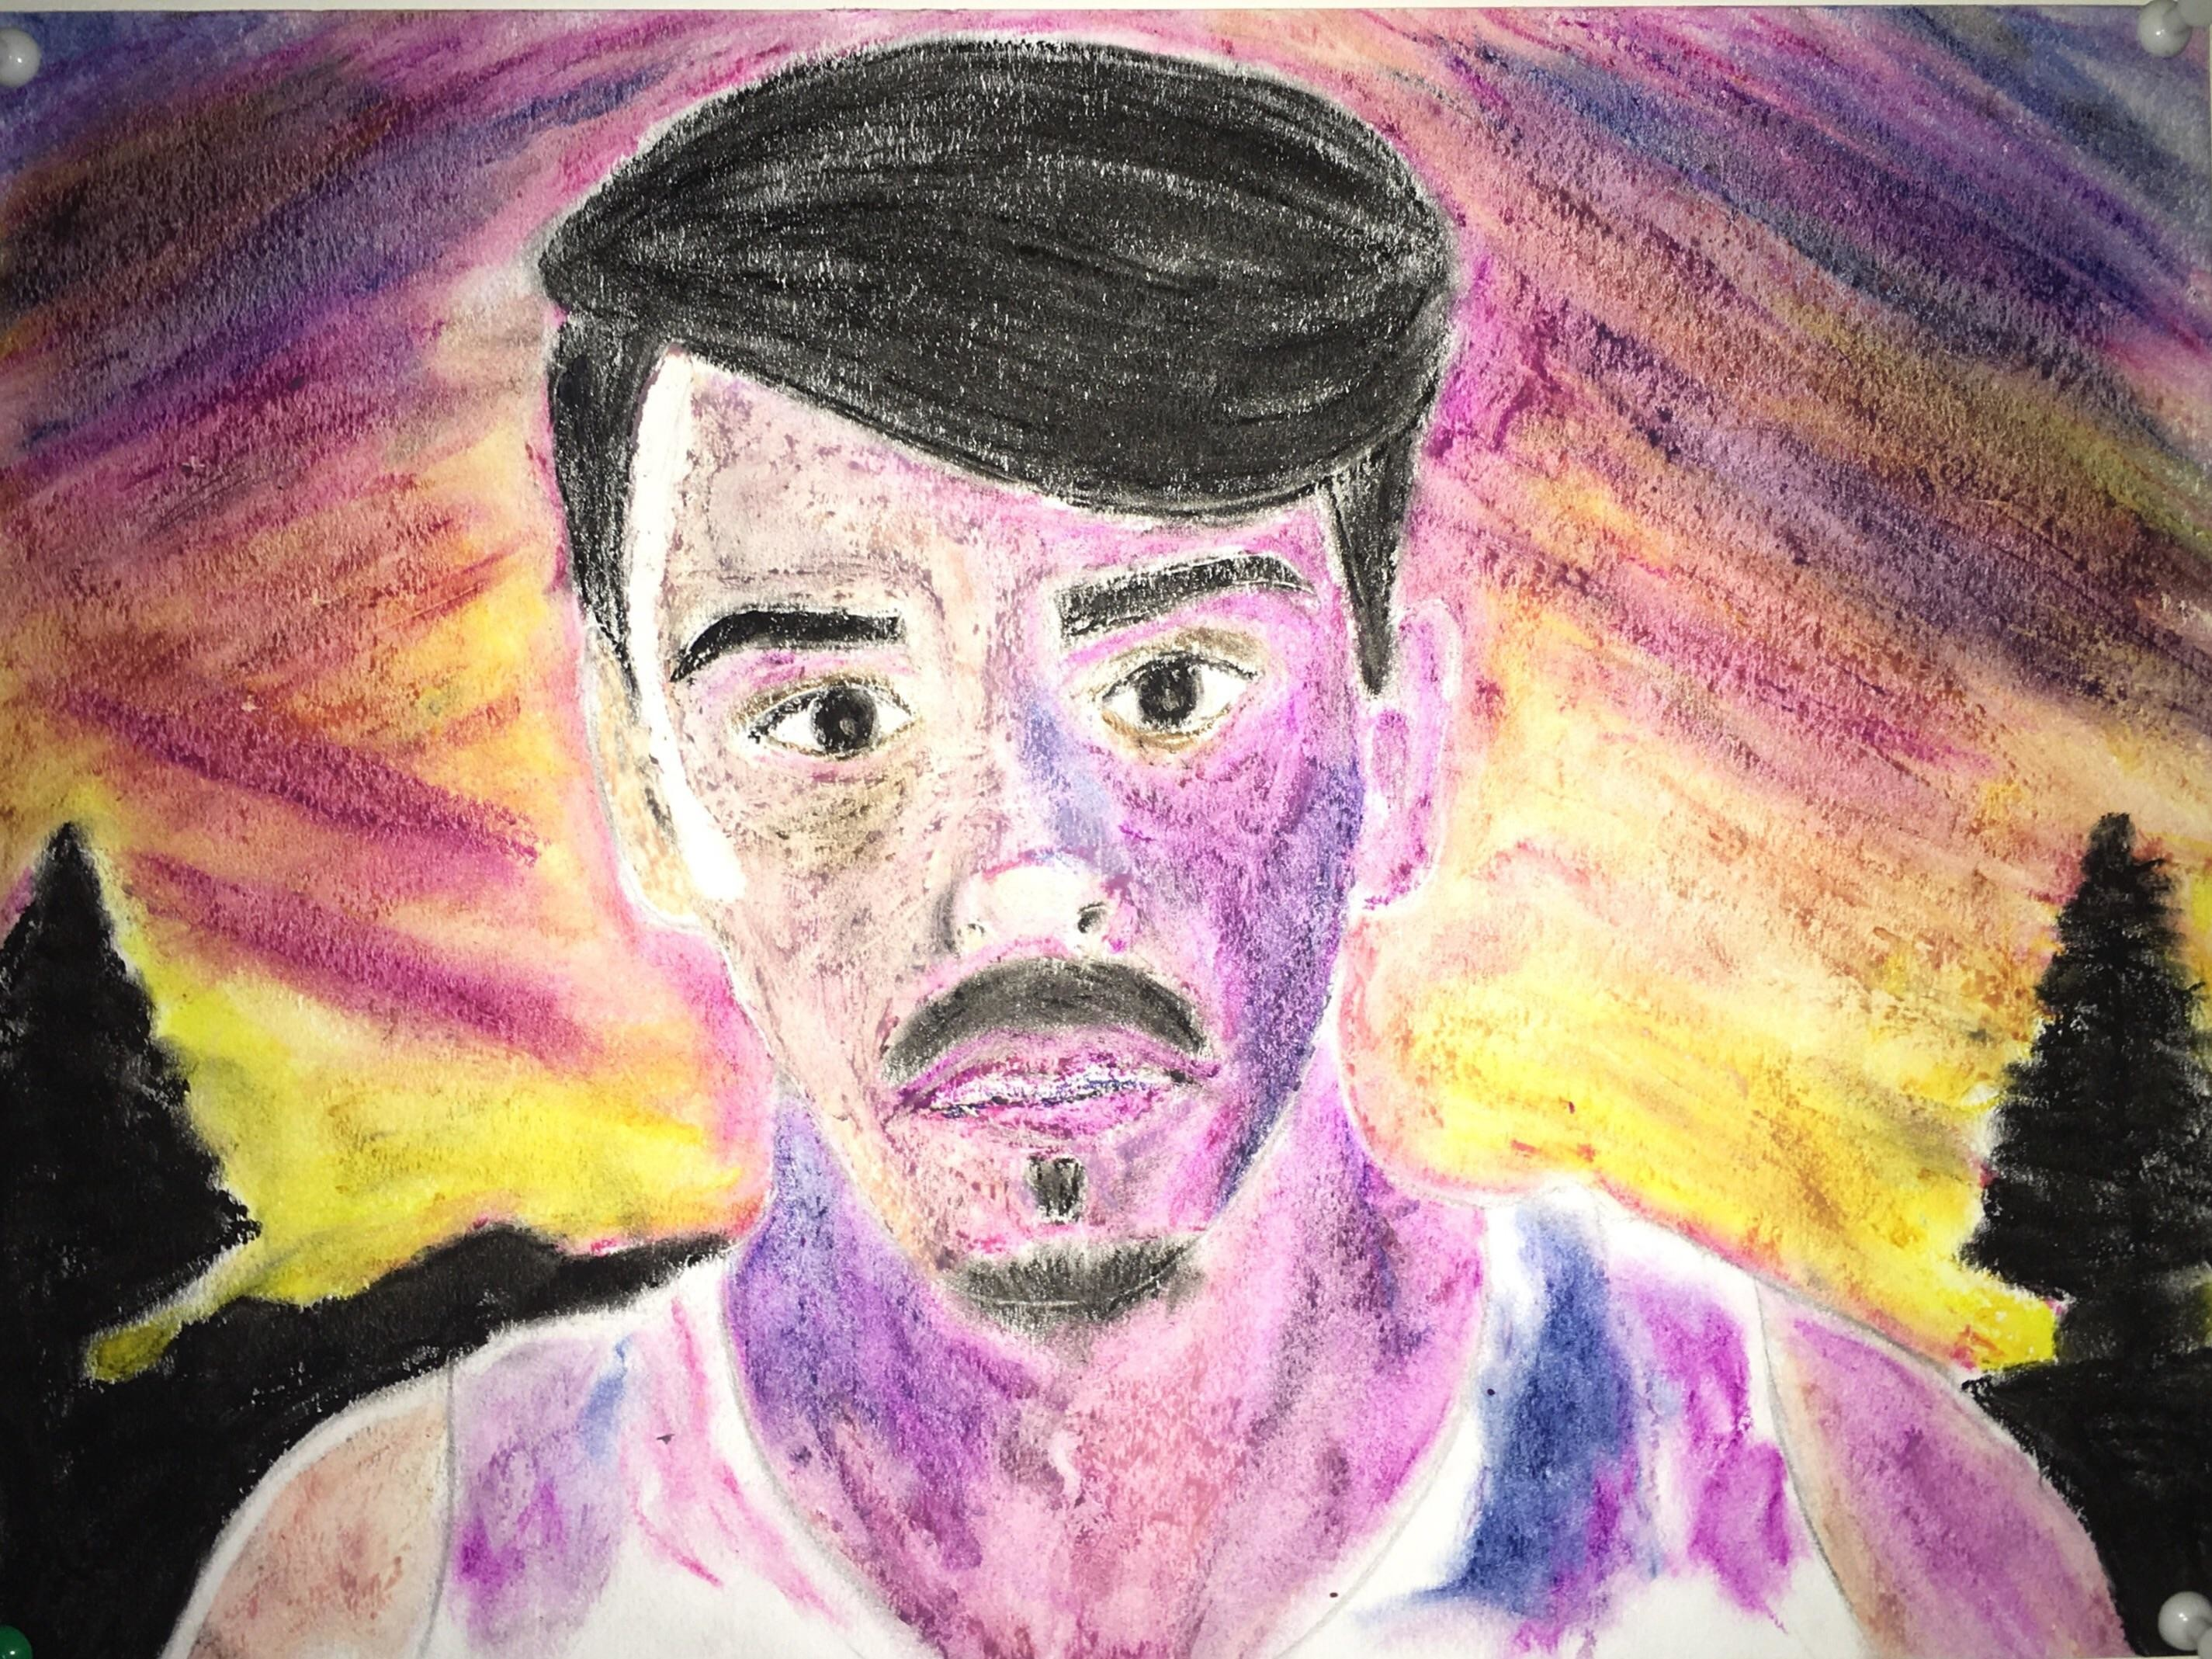 My face in the style of Acid Rap …